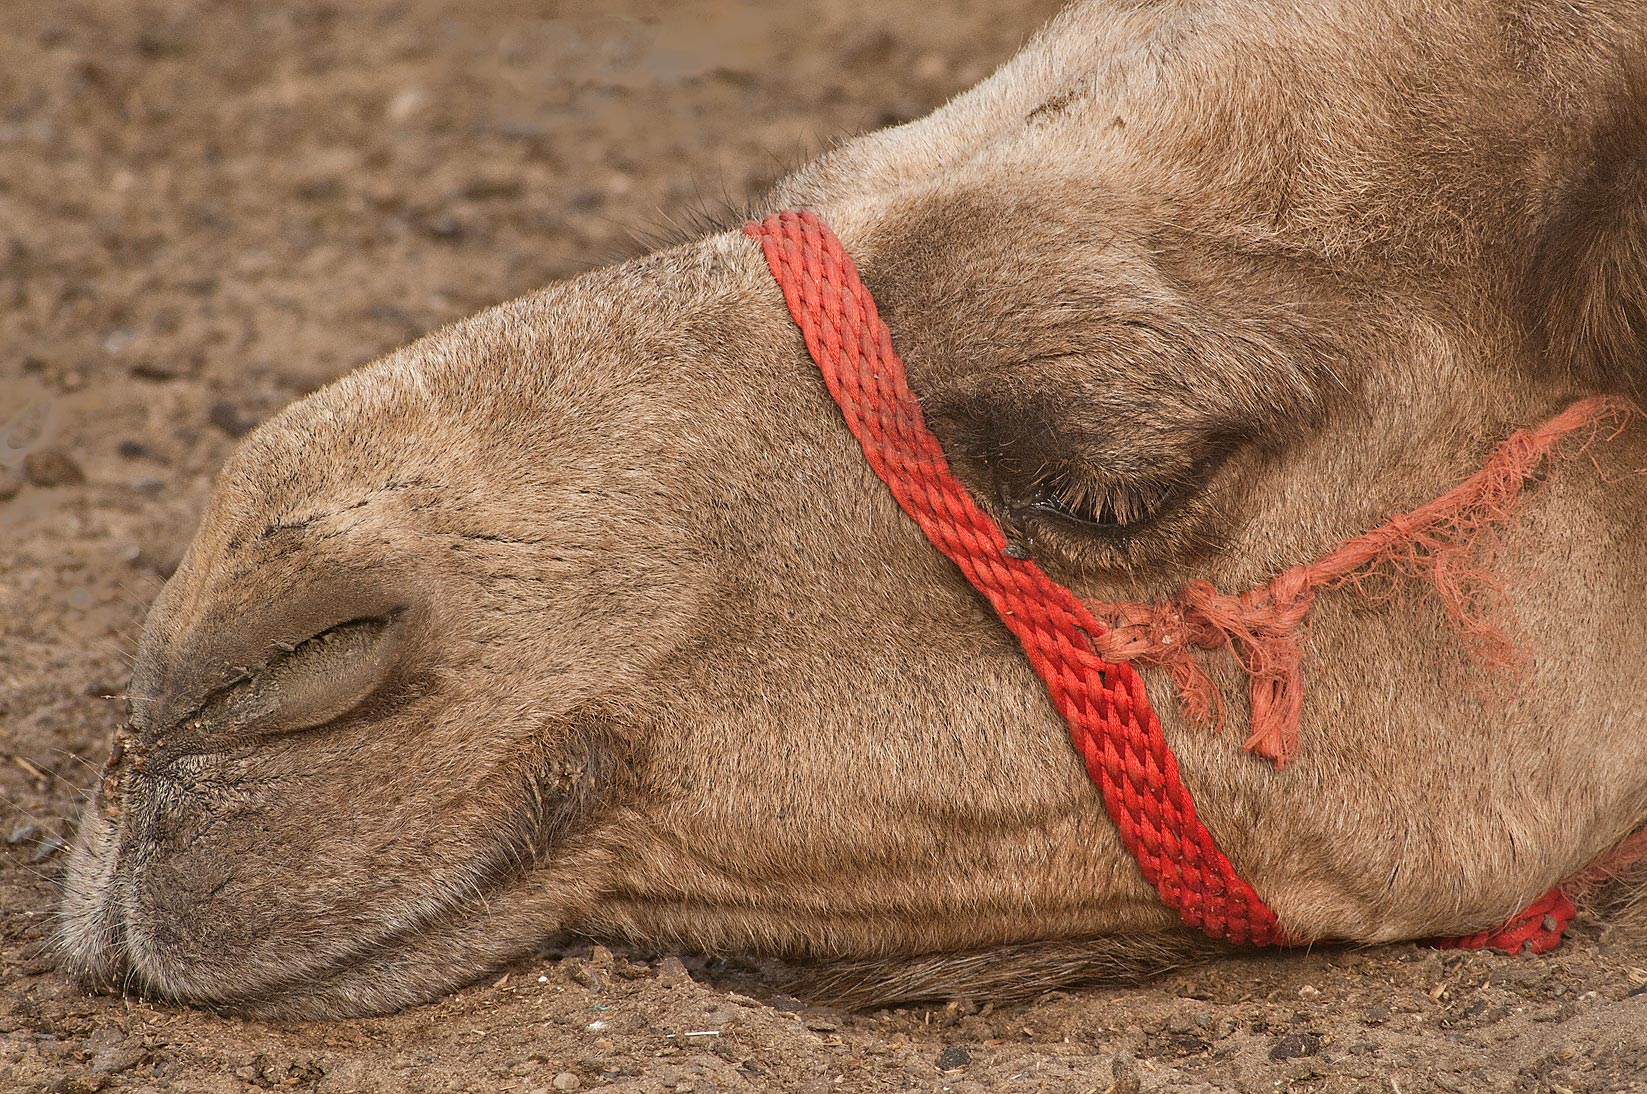 Sleeping camel in Camel Market (Souq), Wholesale Markets area. Doha, Qatar